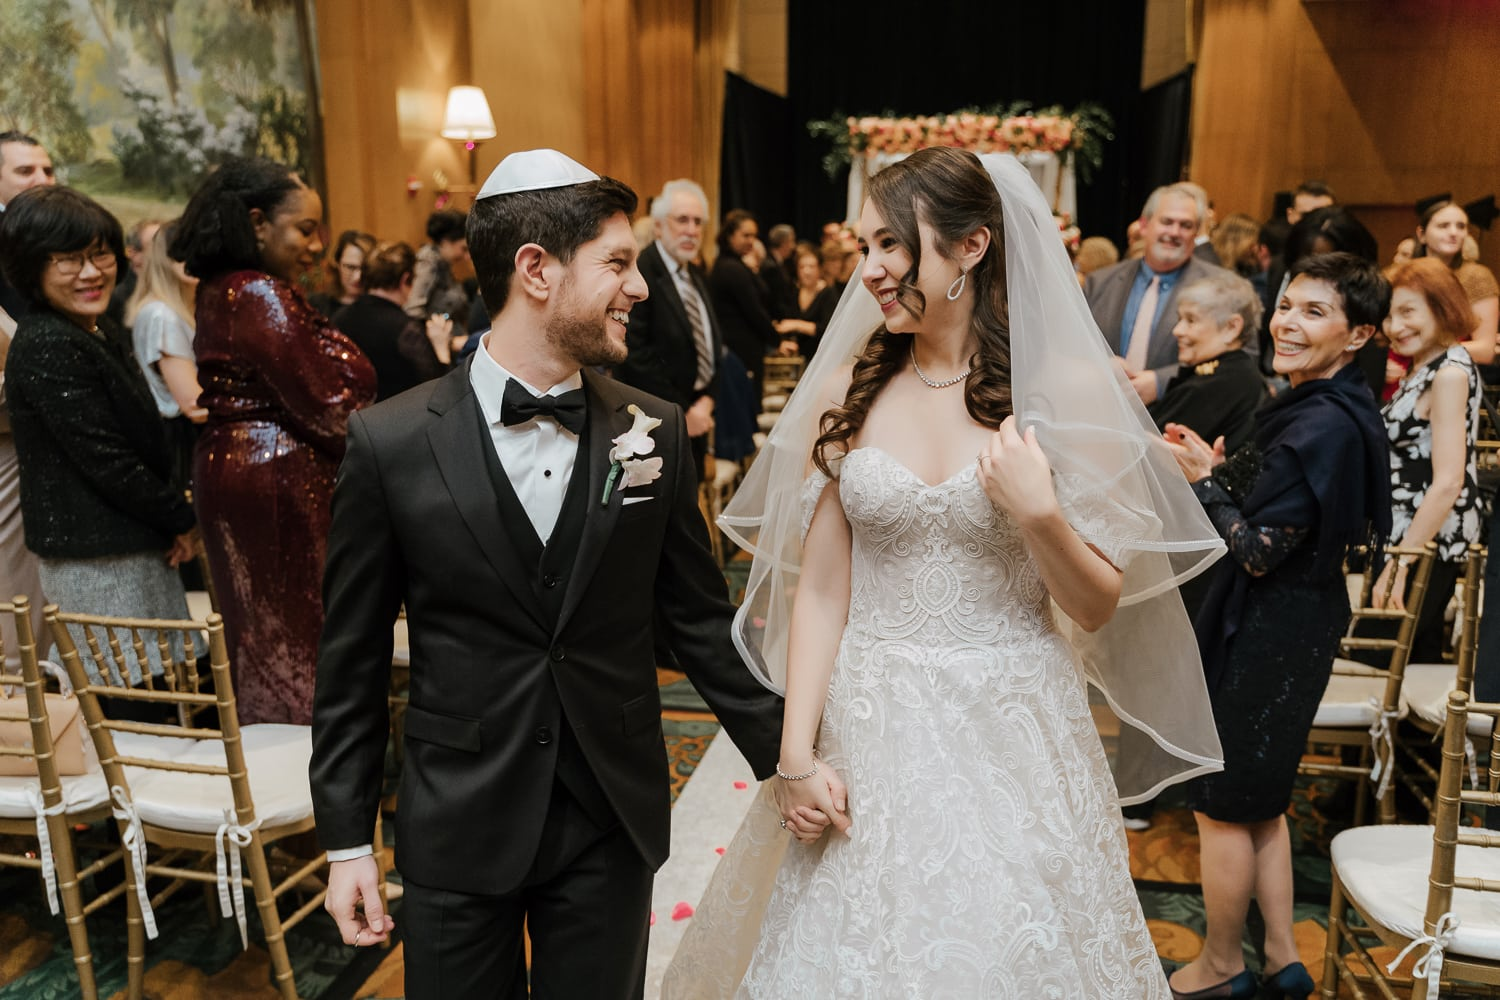 A newly wedded couple exiting their wedding ceremony